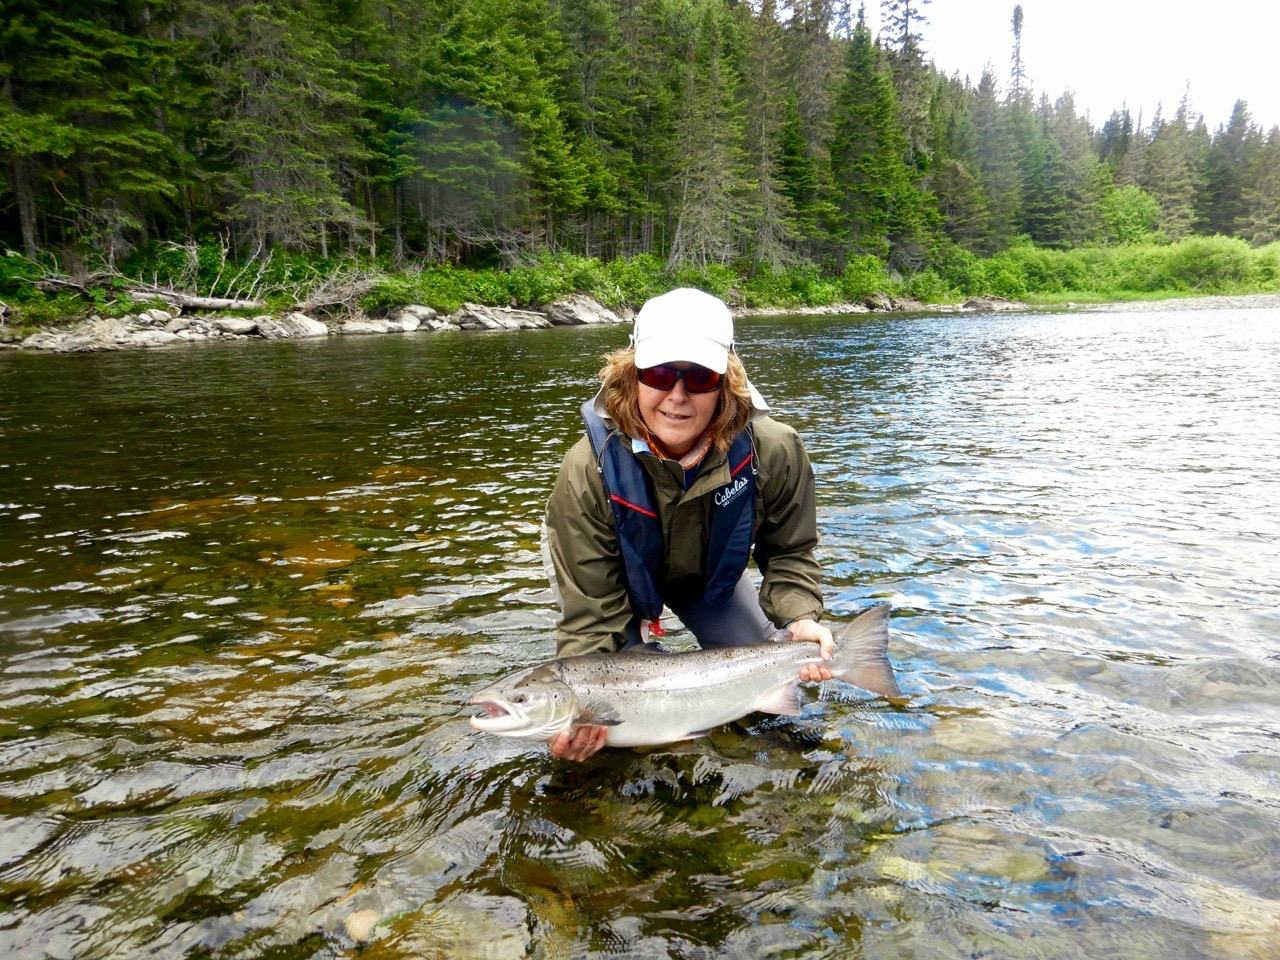 Nicole Armstrong has become a good friend and accomplished angler . here she is with a find Cascapedia salmon, nicely done Nicole